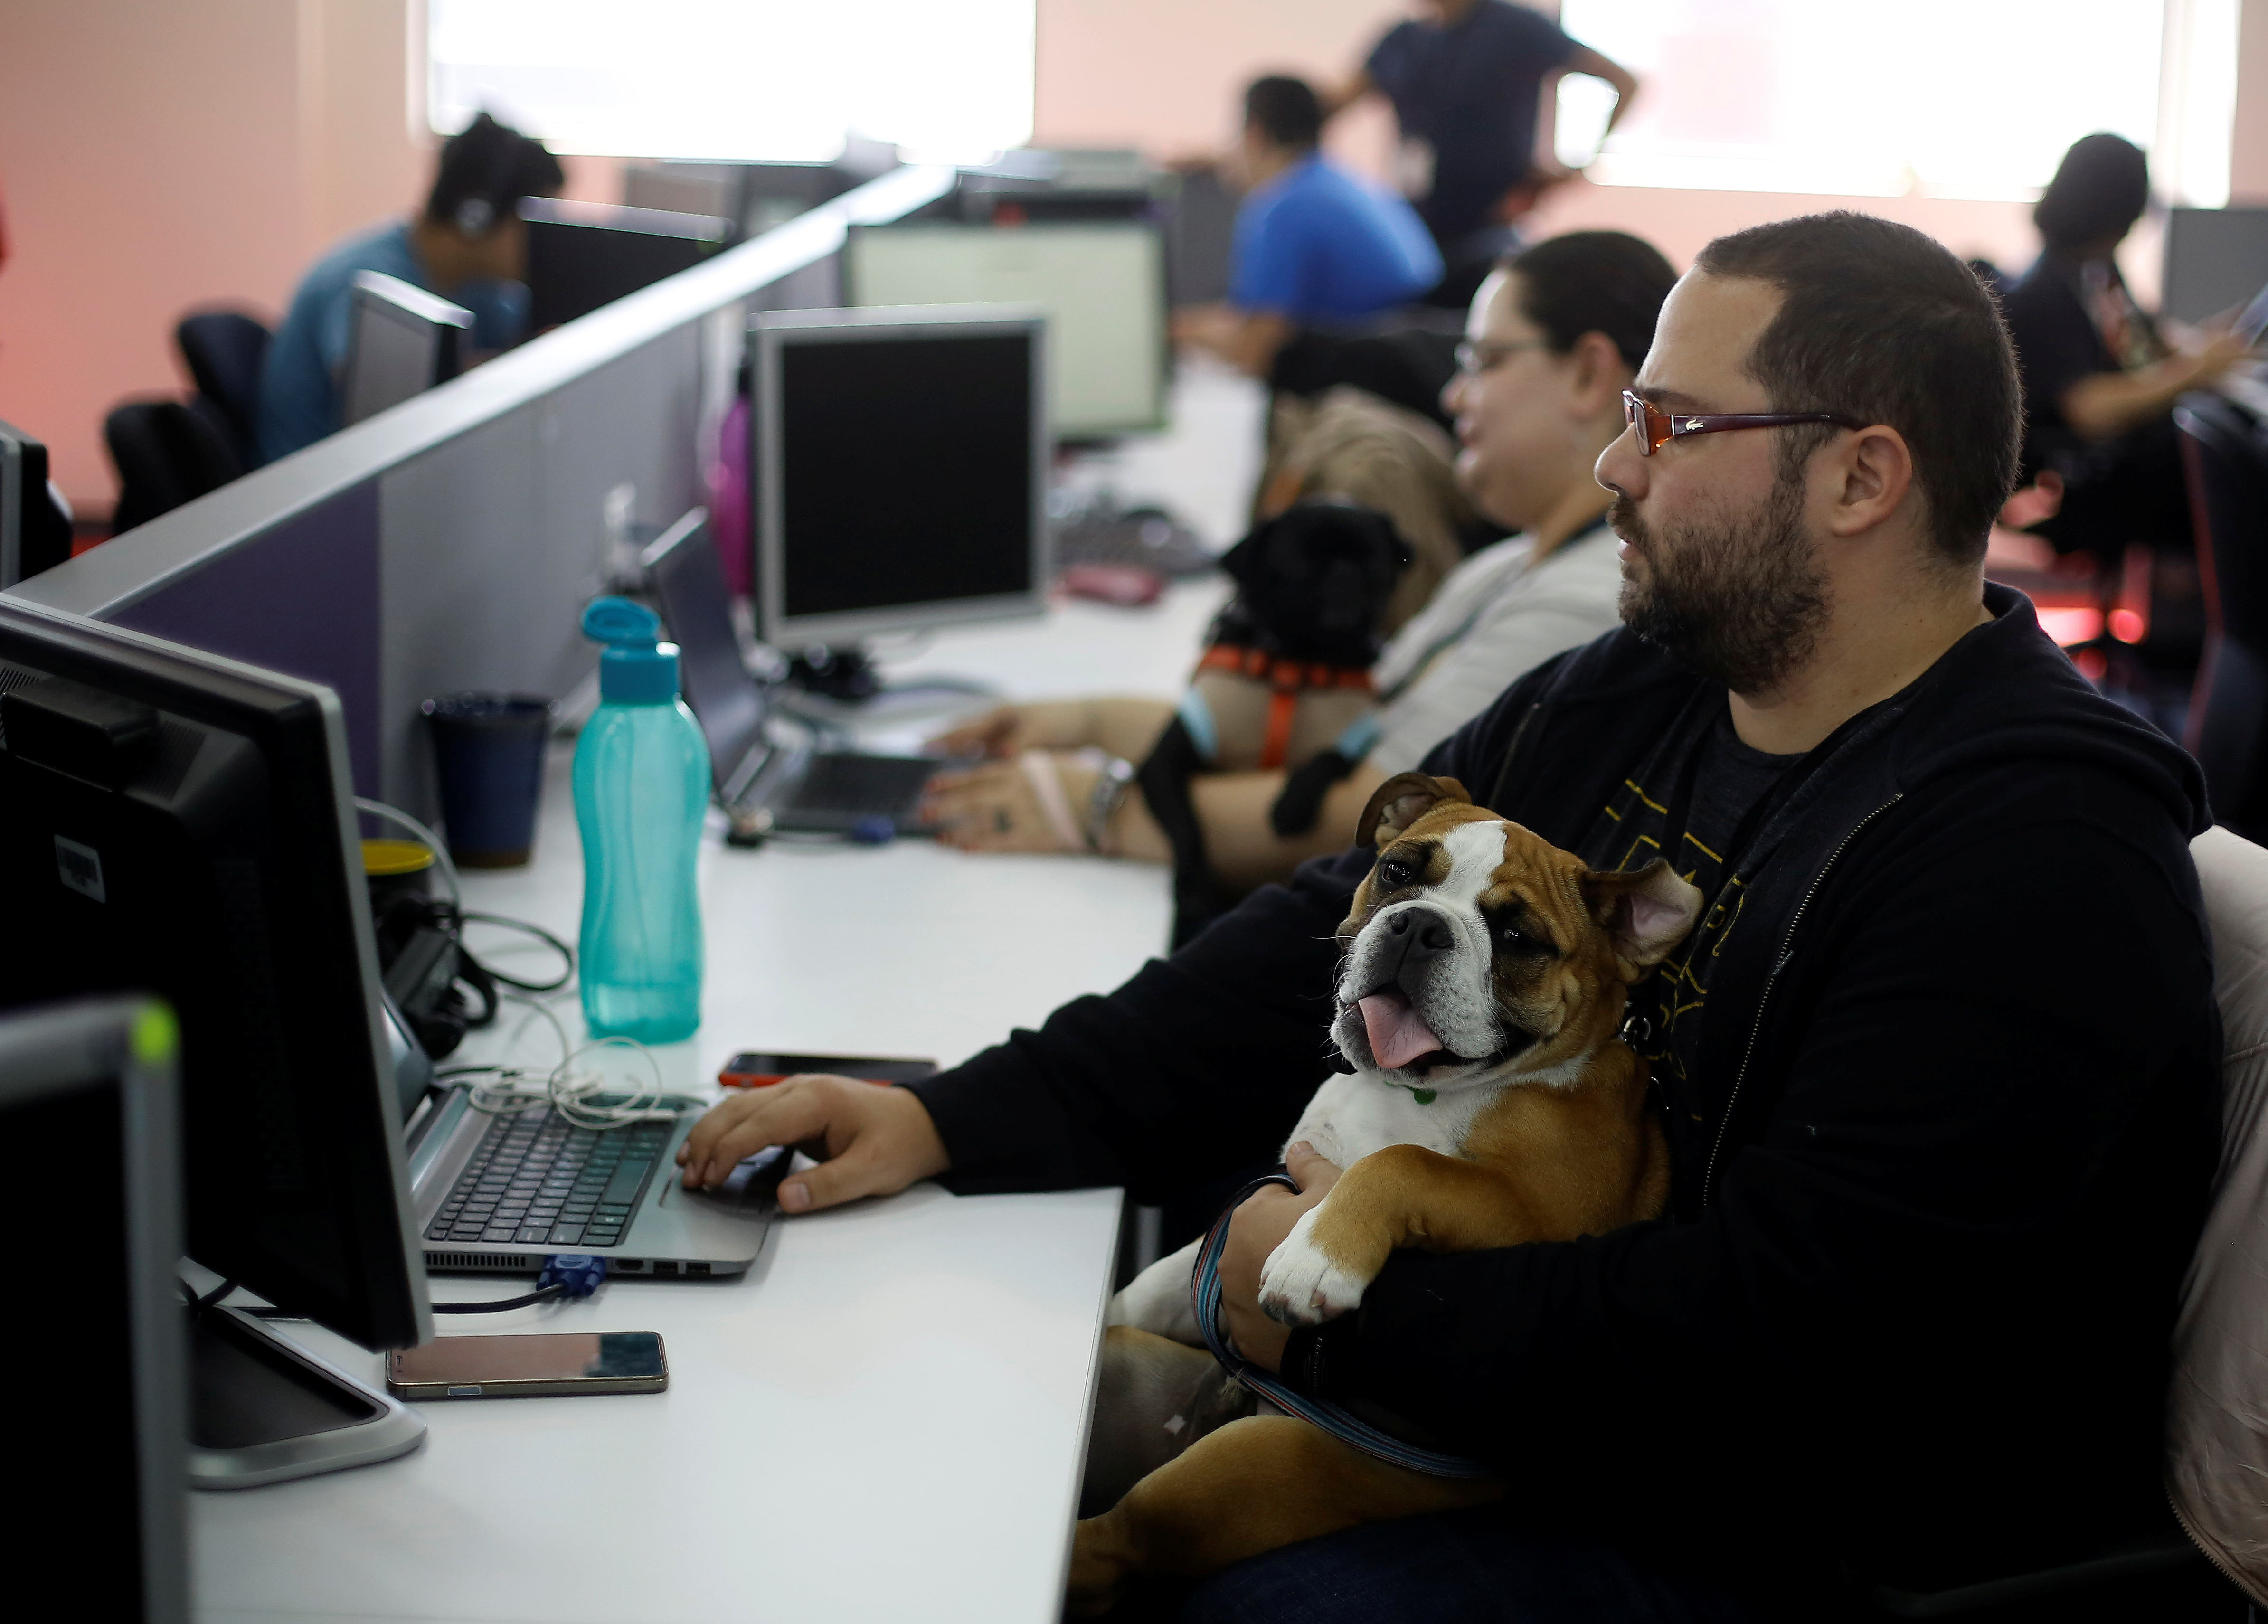 An employee of global professional services company Accenture works next to his dog, during a day the company offers to their employees to work accompanied by their pets in Heredia